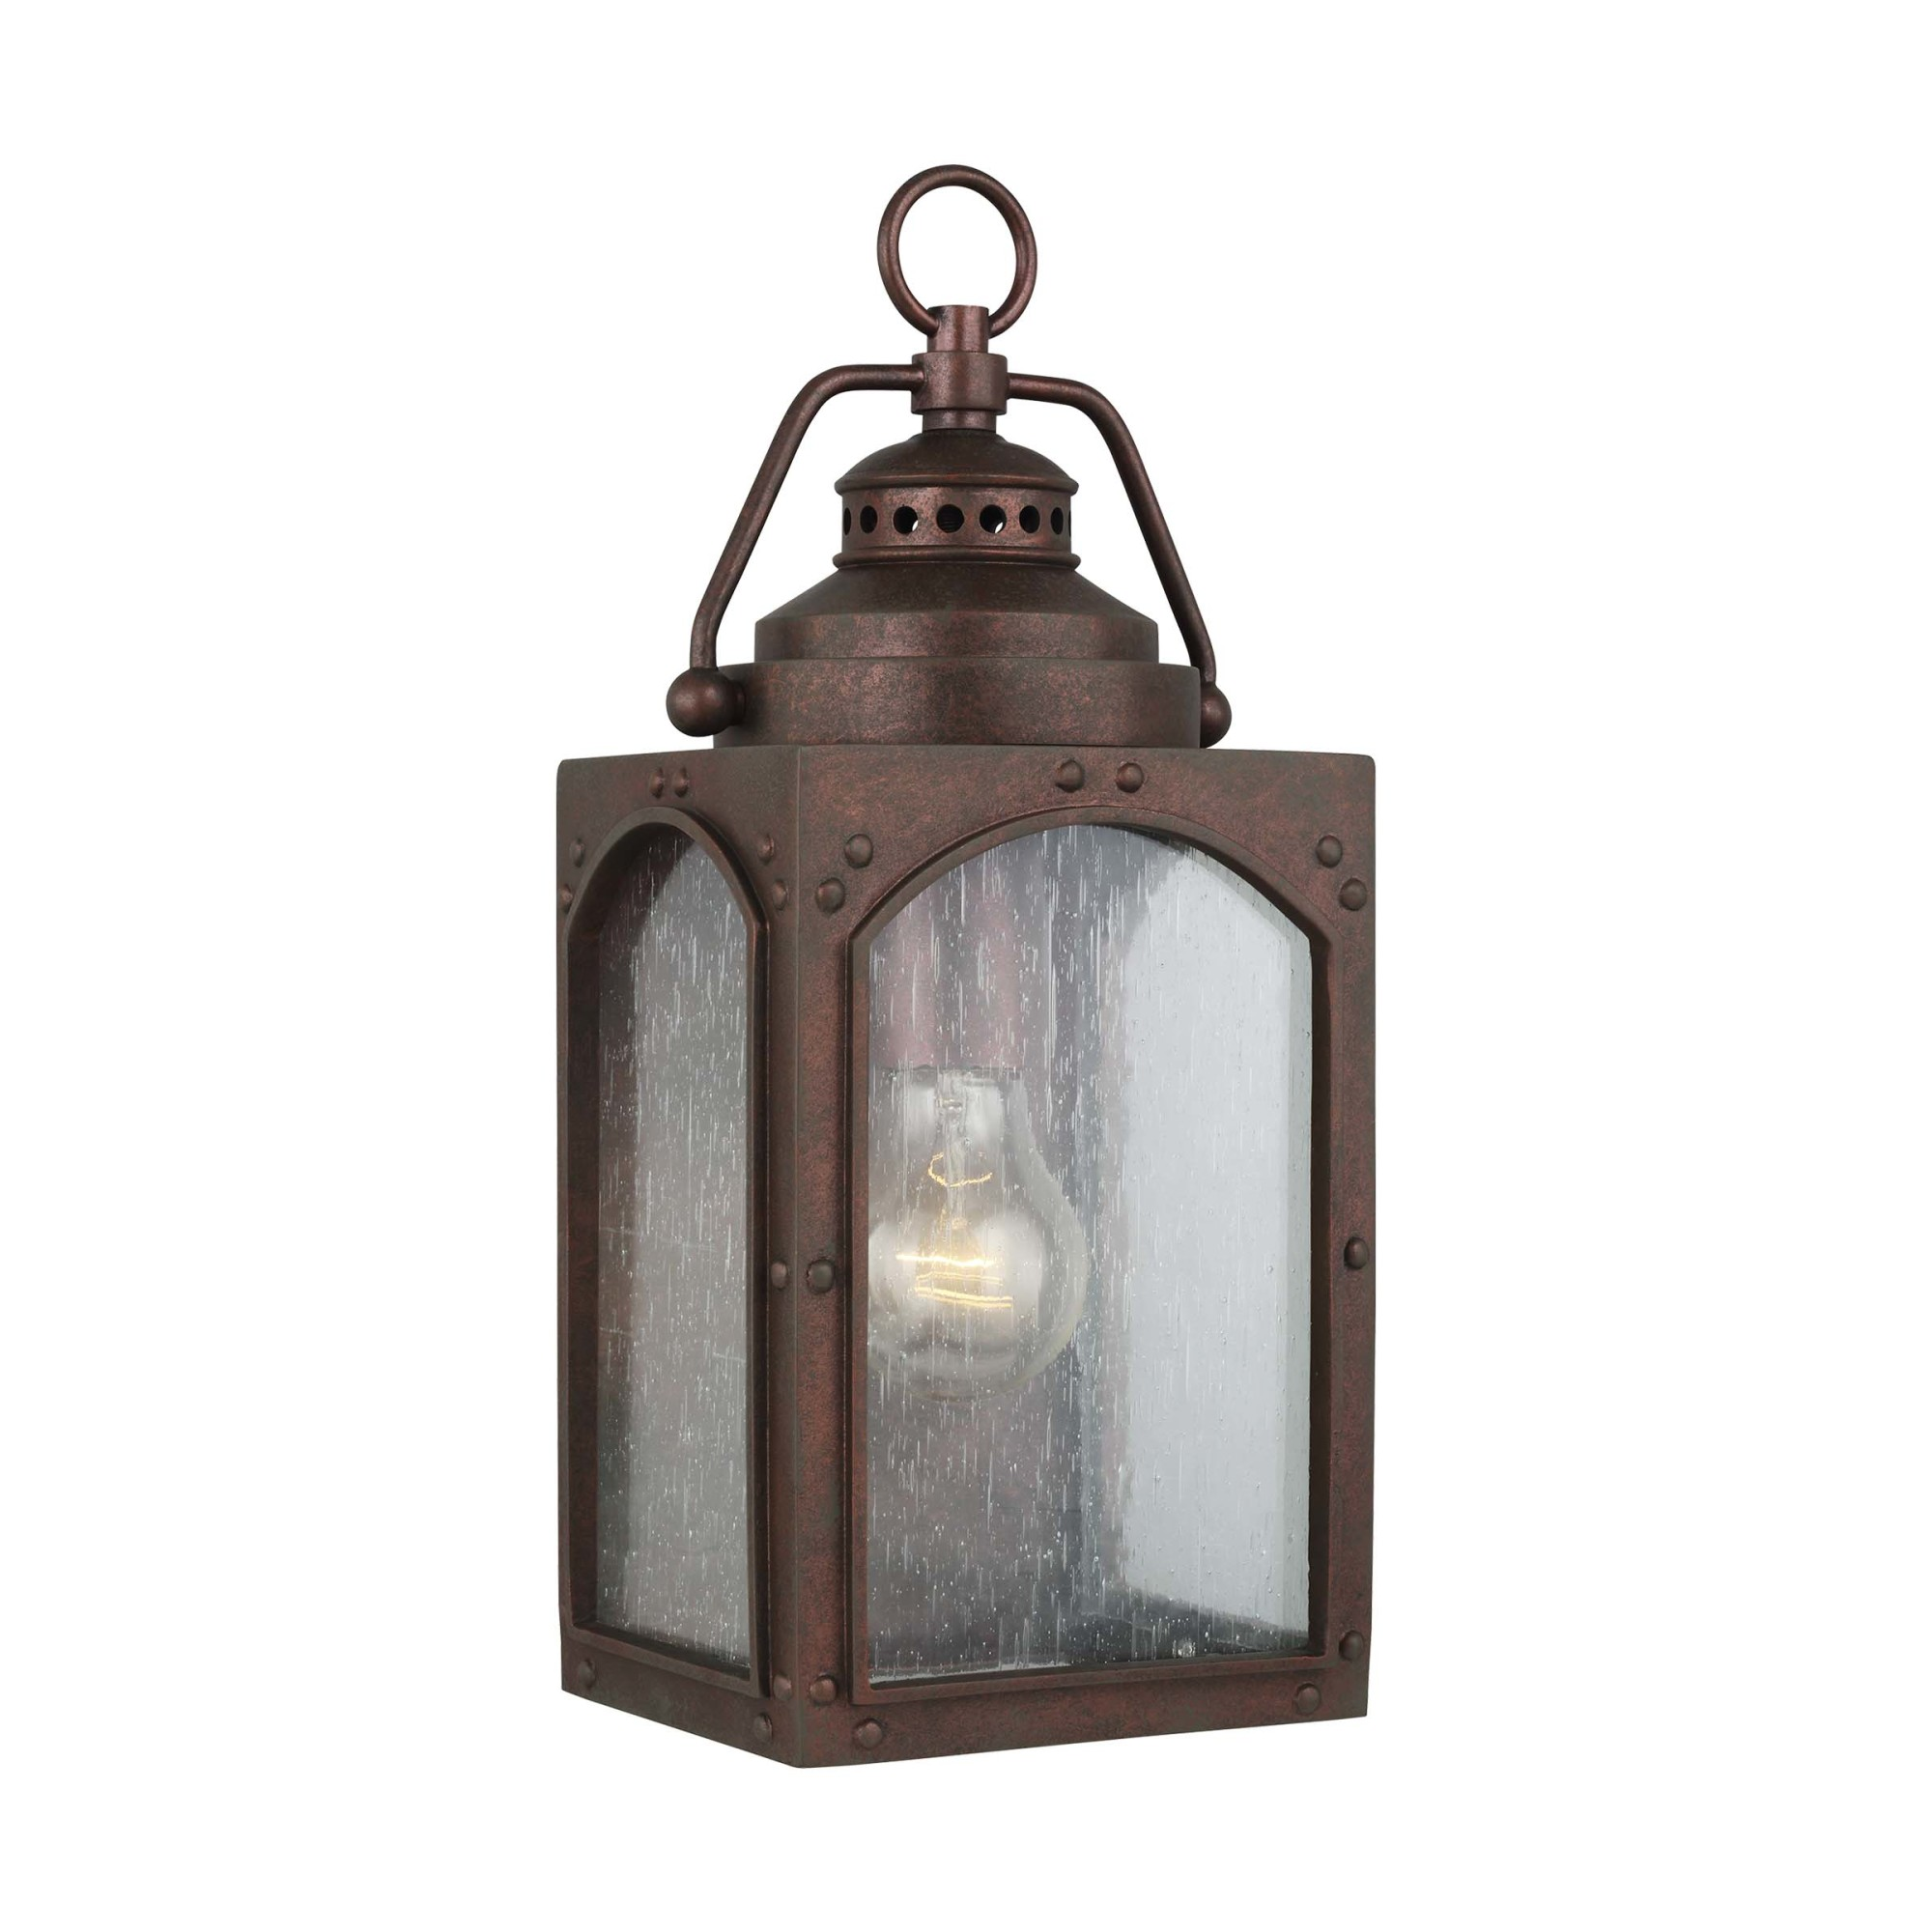 Details About Feiss Ol14370 Randhurst Single Light 14 Tall Outdoor Wall Sconce Copper